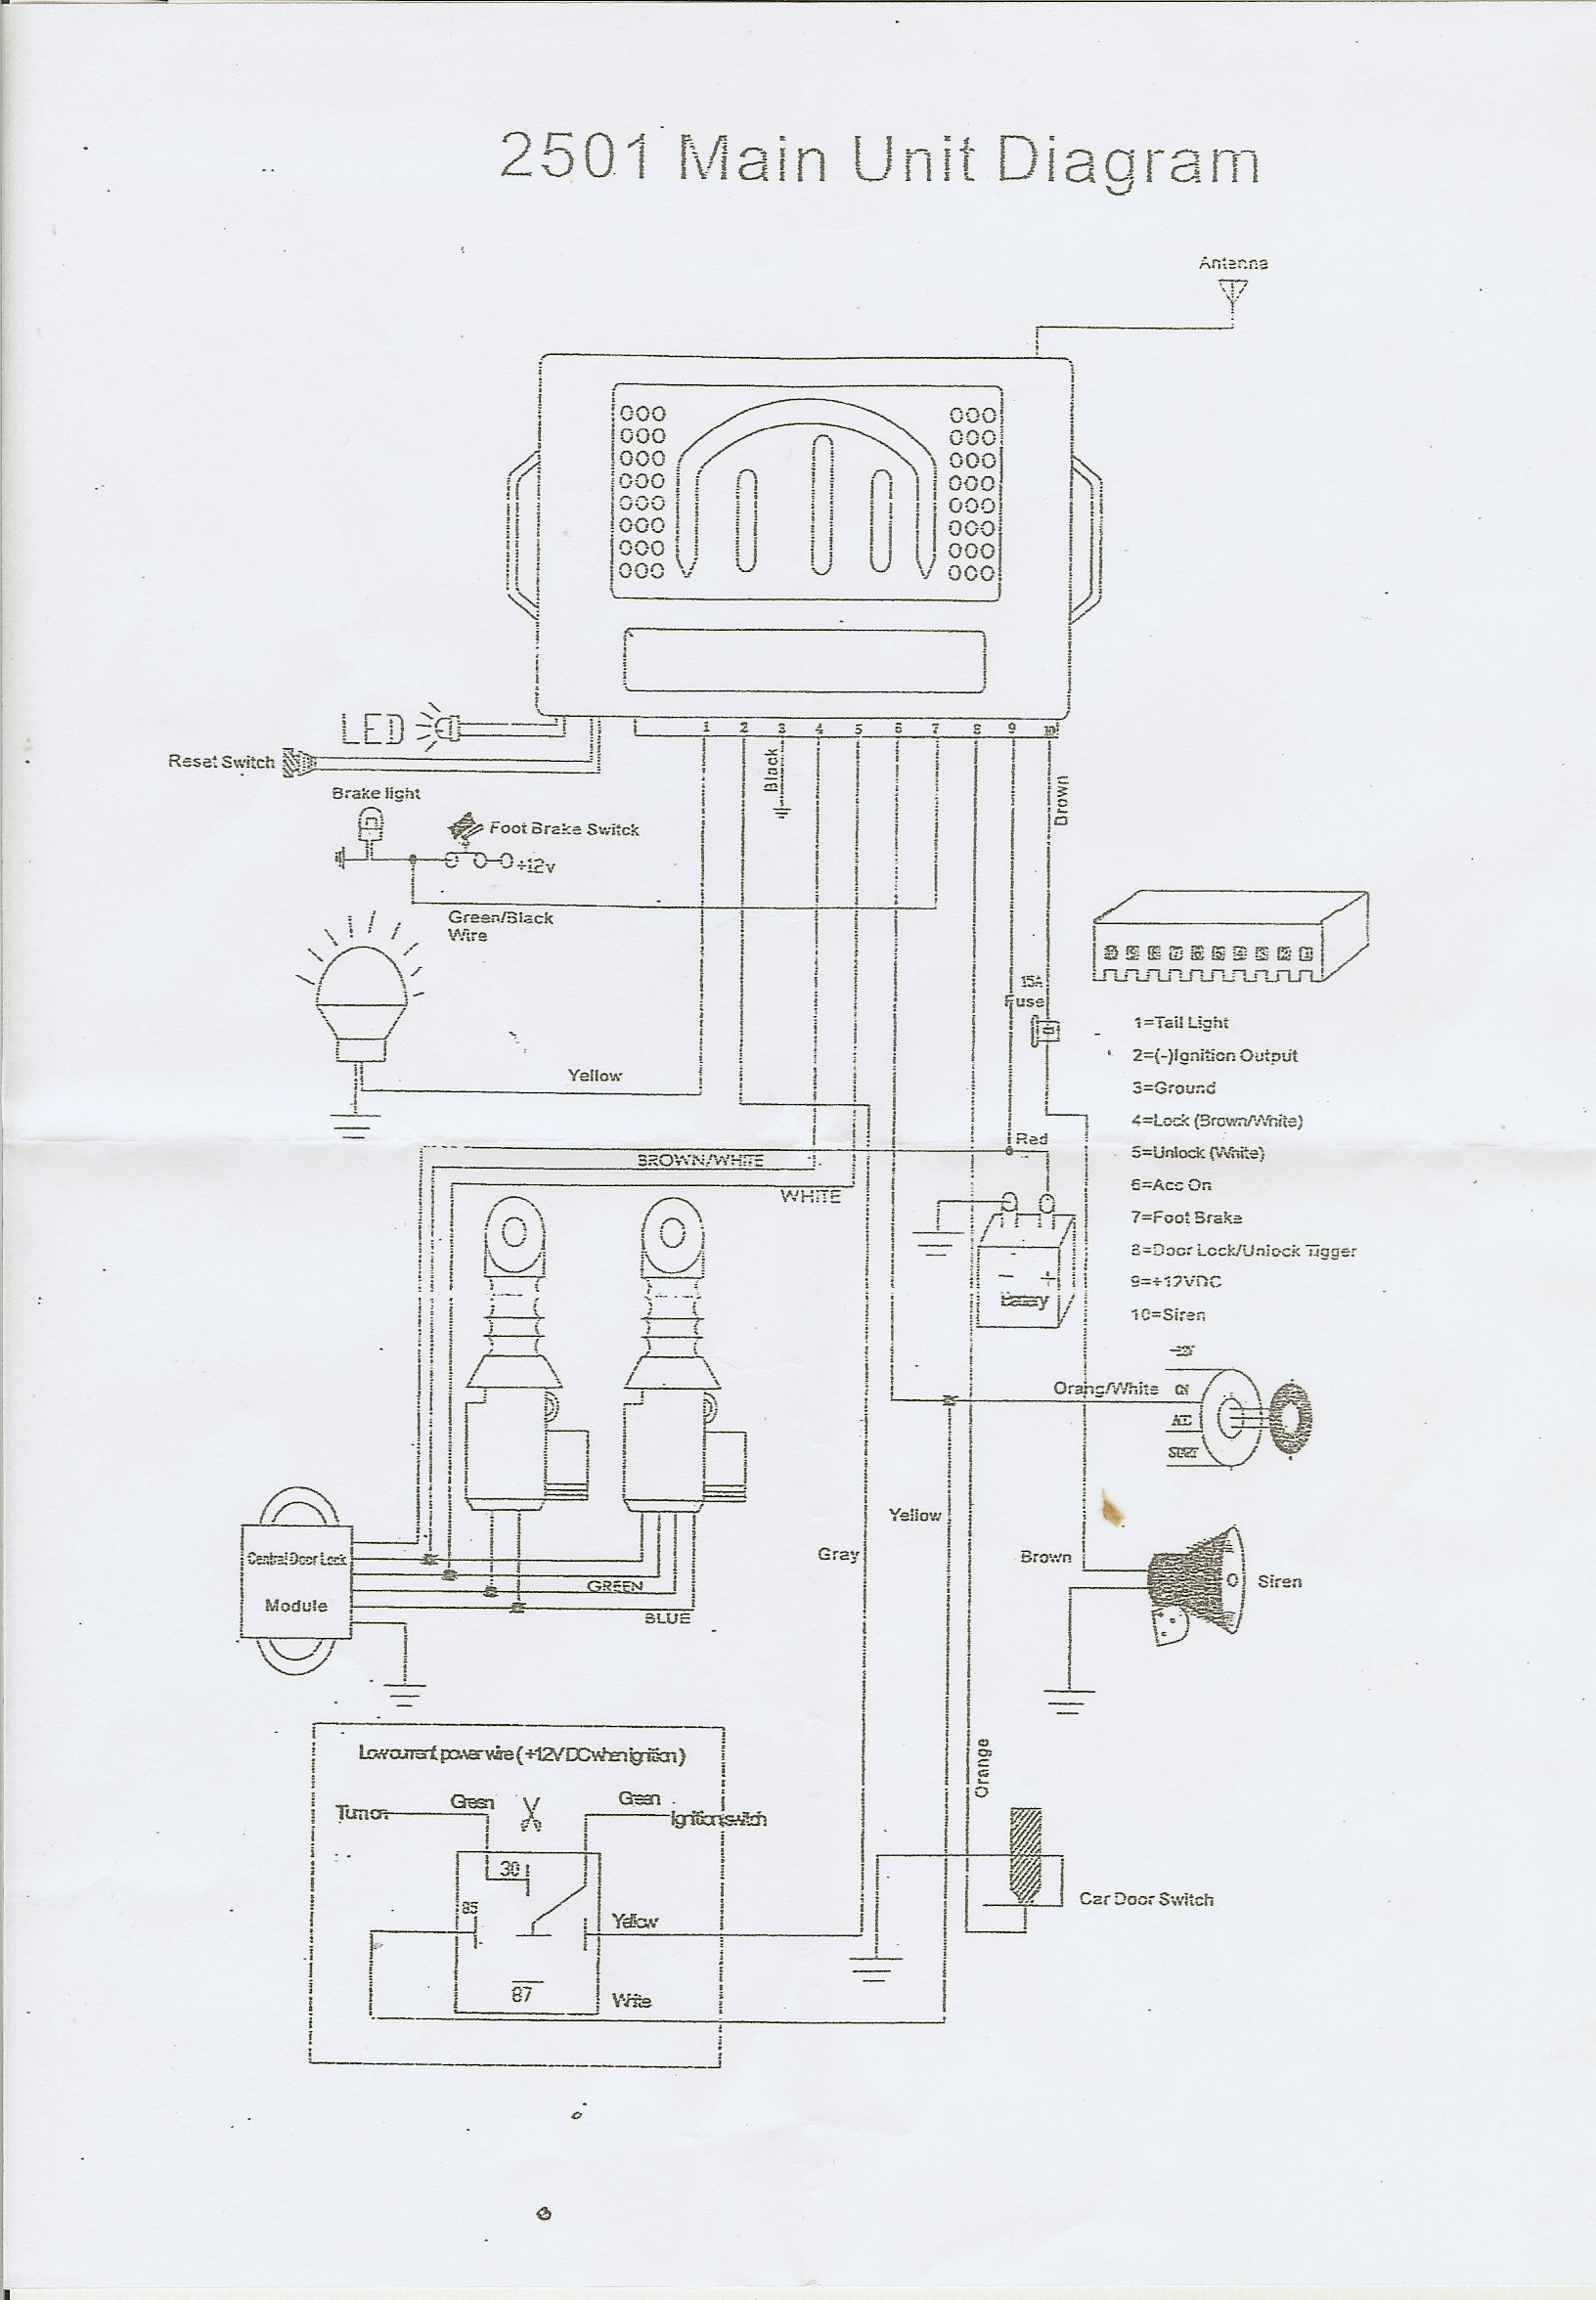 1997 ford festiva wiring diagram 1997 circuit diagrams